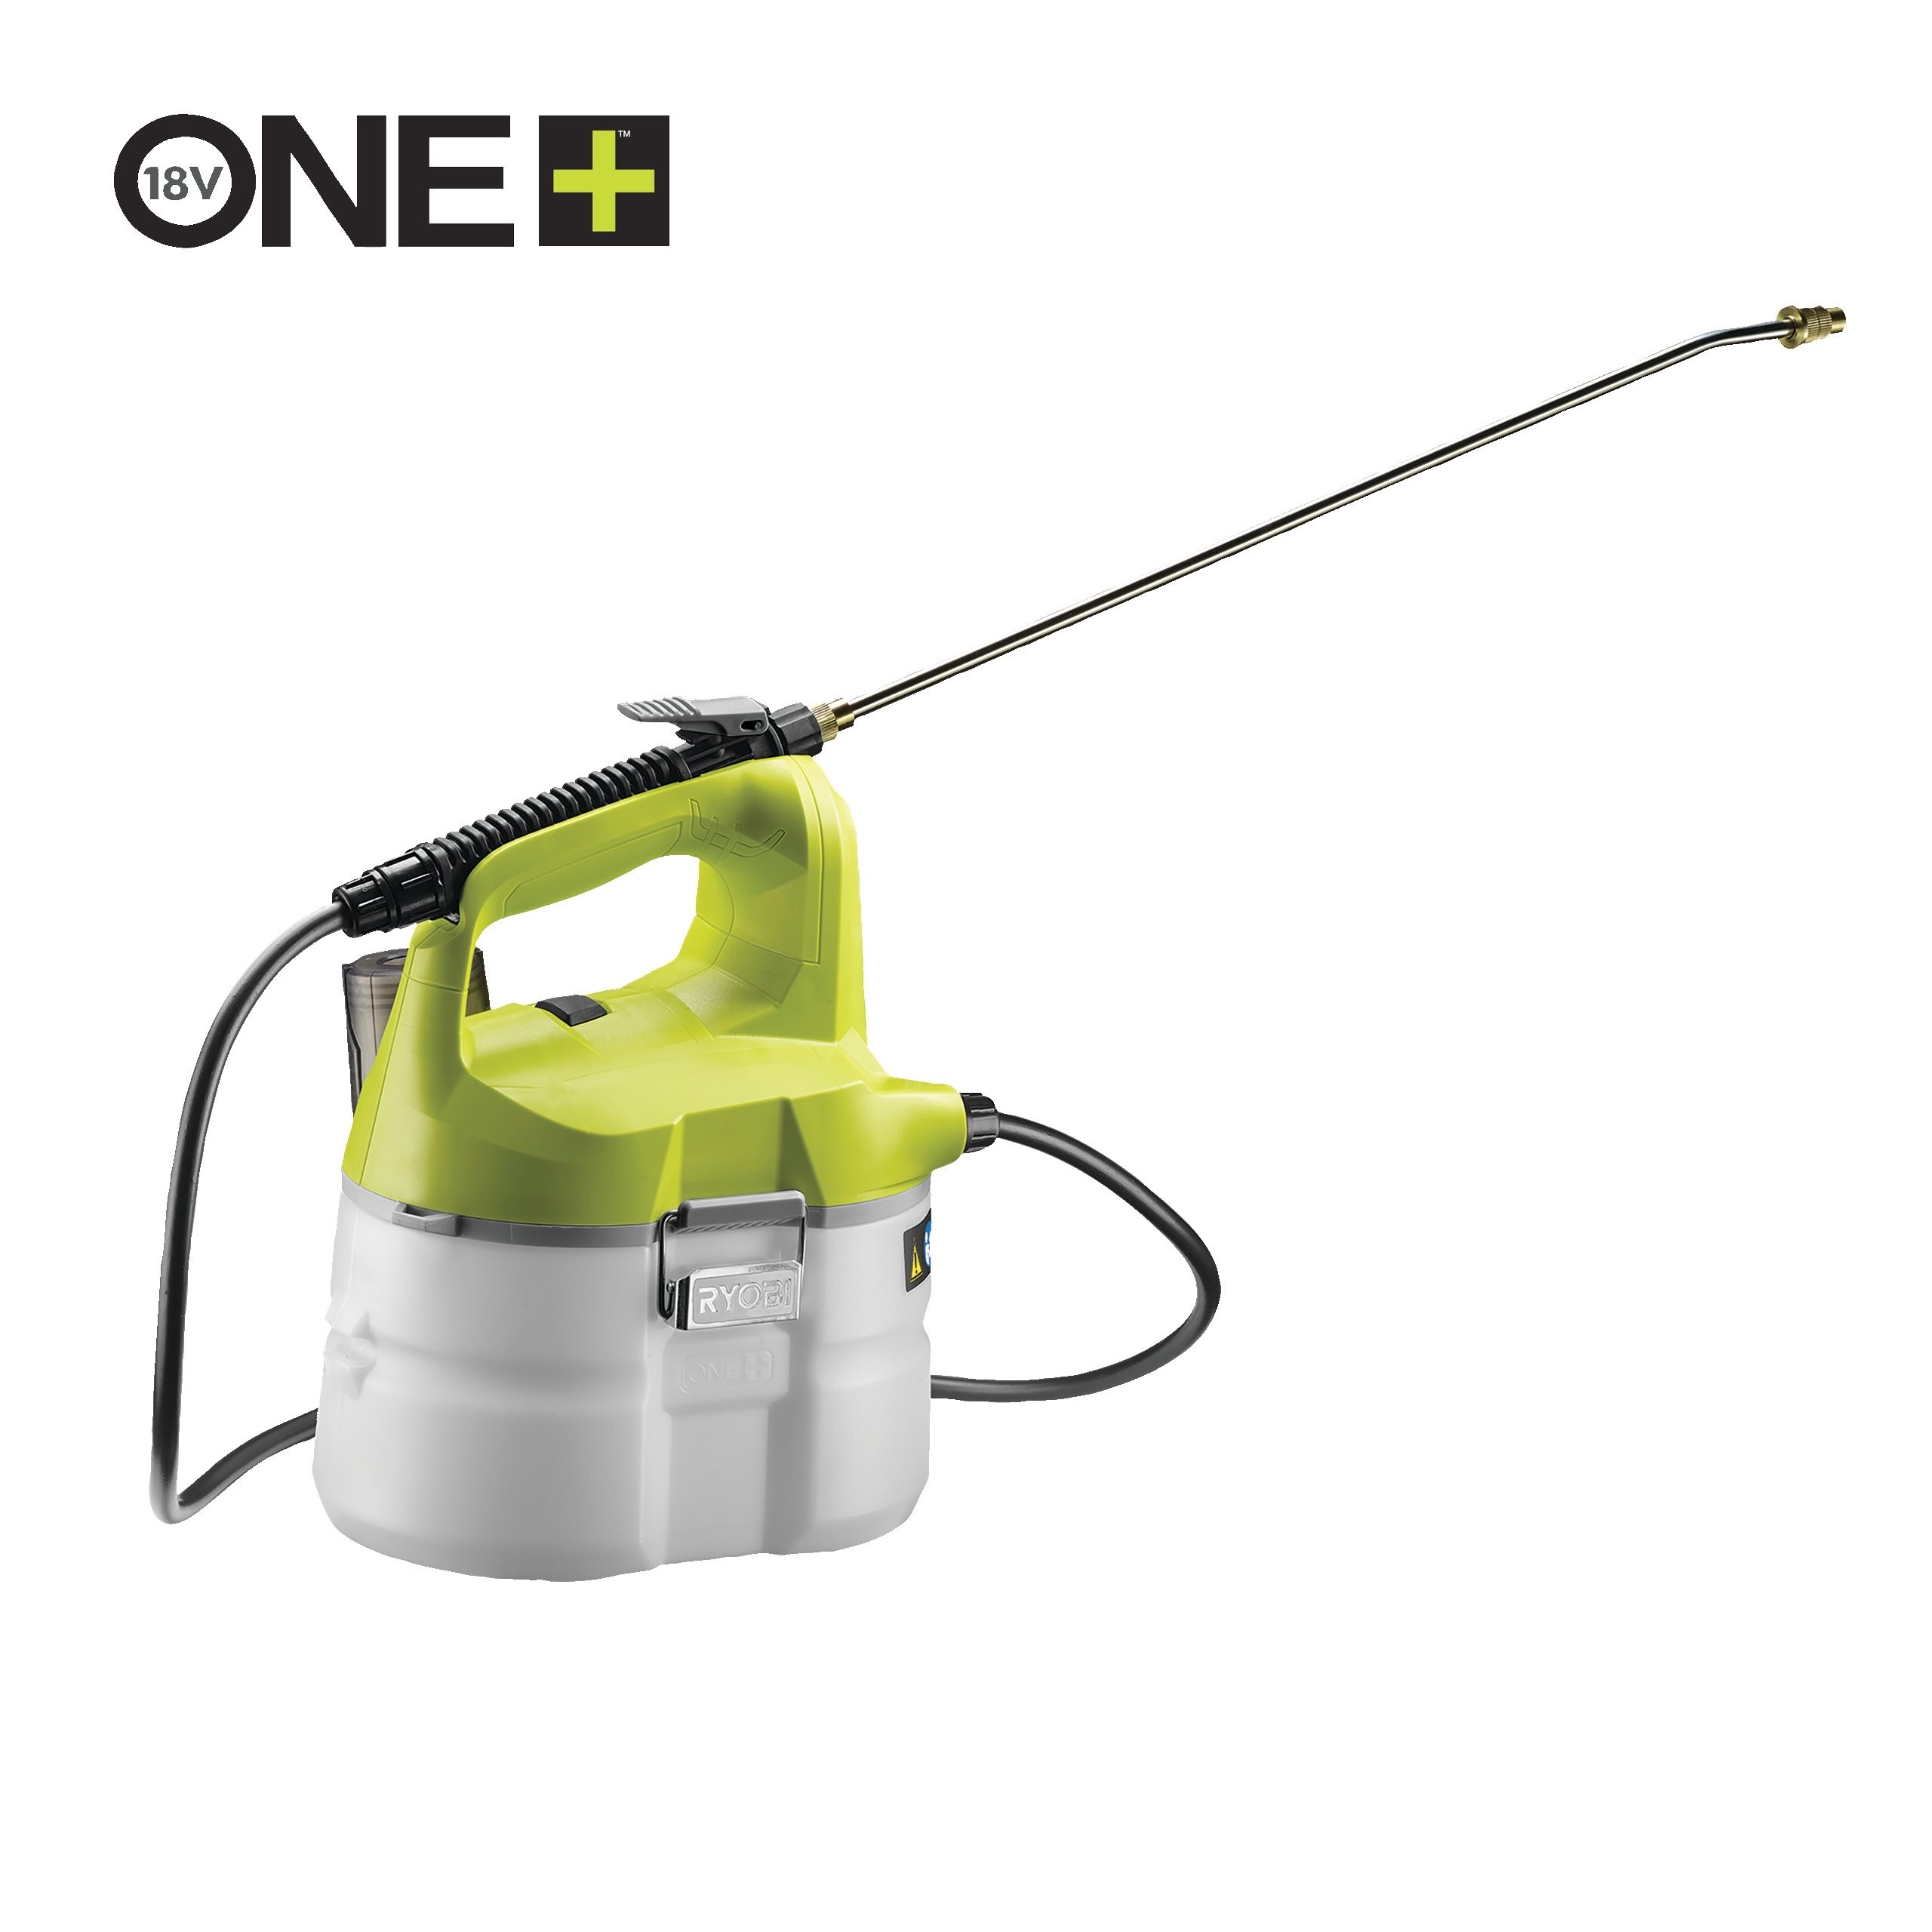 18V ONE+™ Cordless Weed sprayer (Bare Tool)